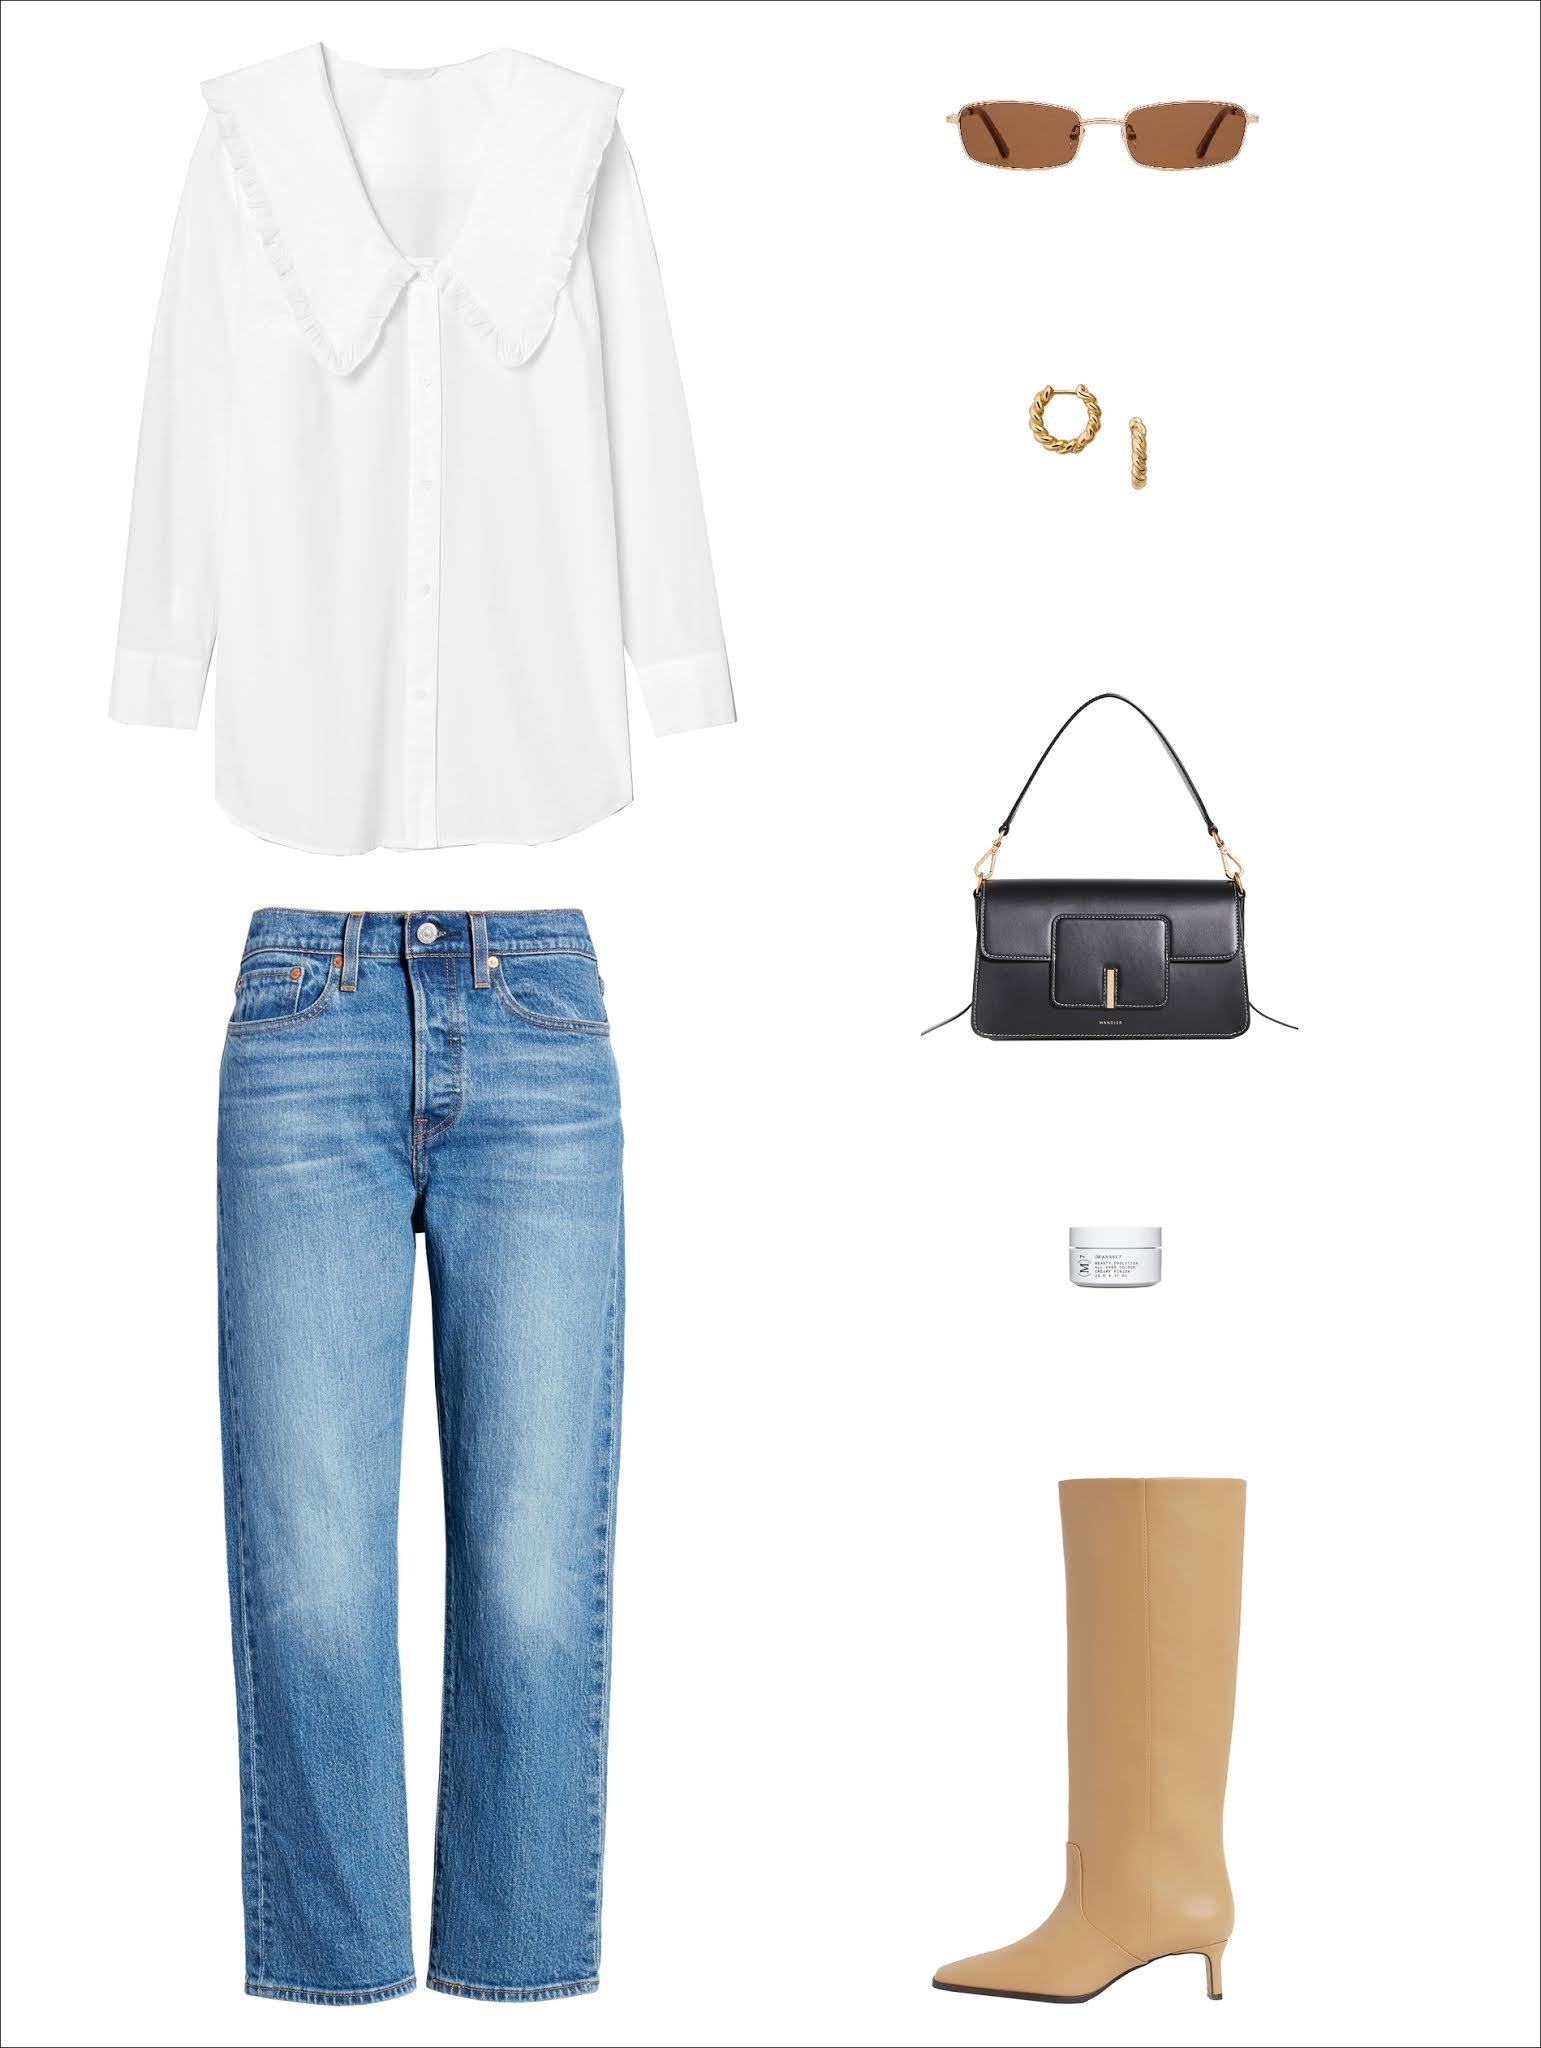 Spring Outfit Idea — Big Collar Trend 2021 — White Large Collared Shirt, Twist Hoop Earrings, Black Shoulder Bag, Straight-Leg Jeans, Beige Tall Boots